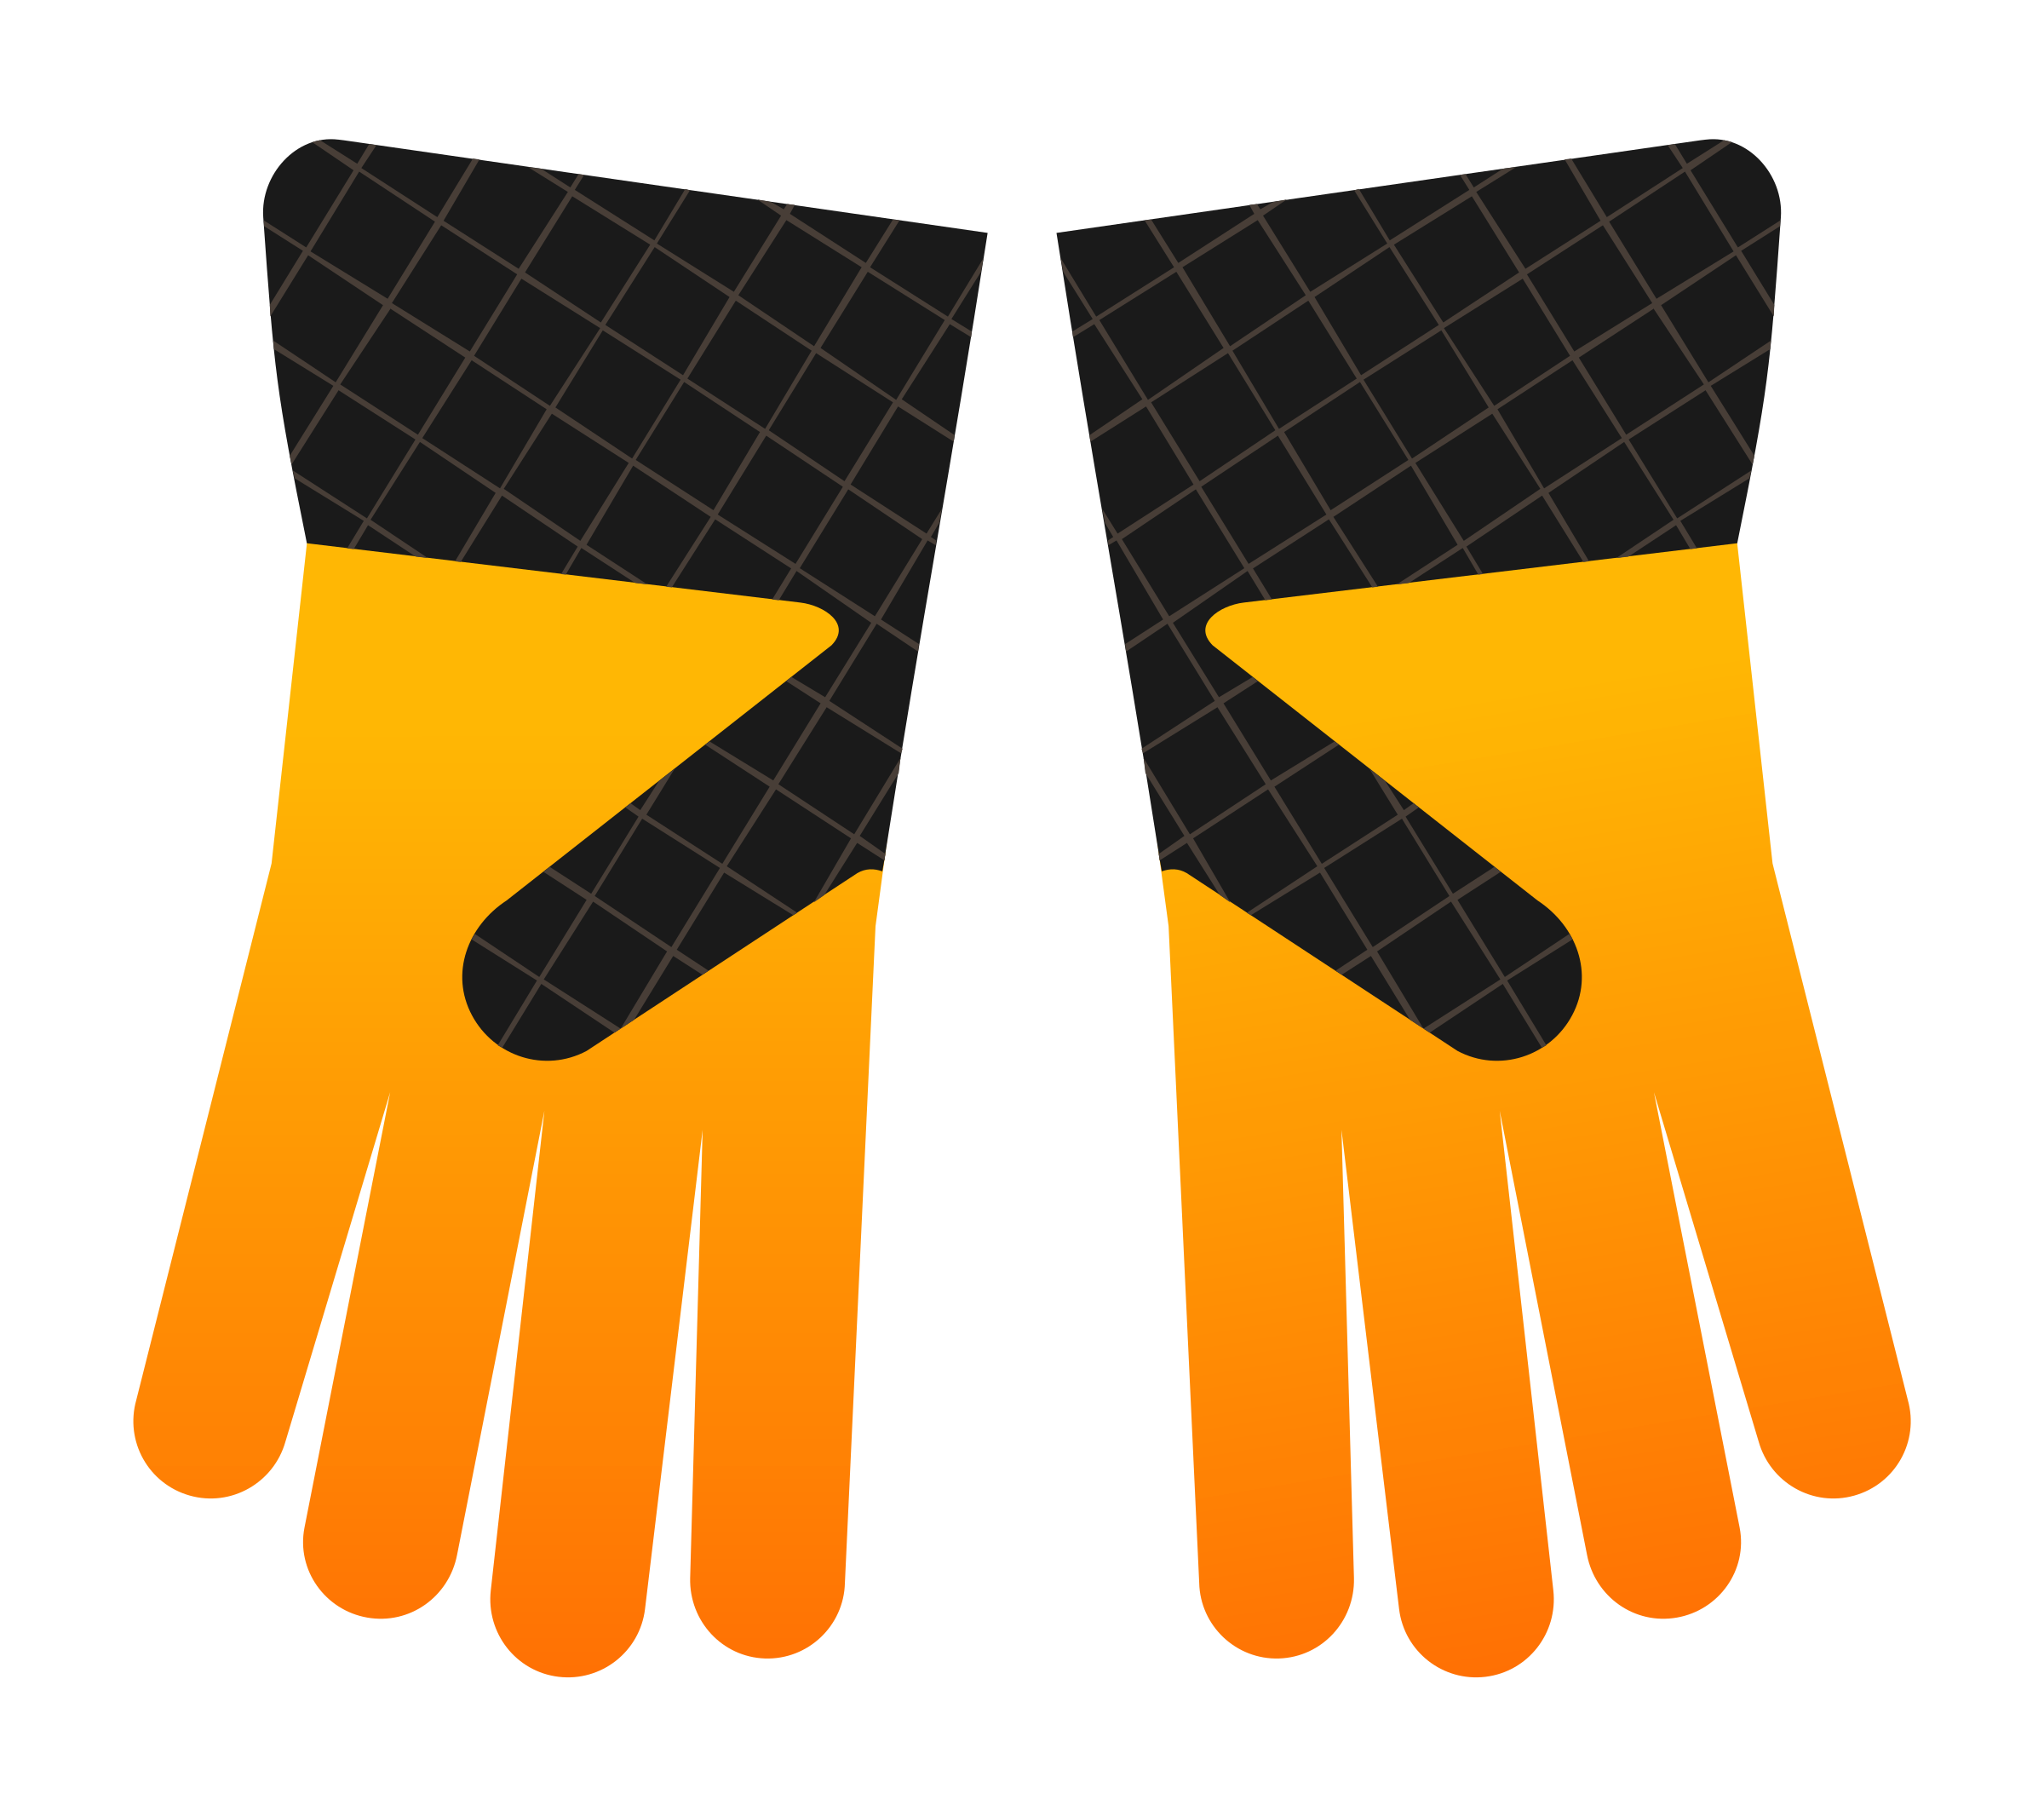 Big image png. Gloves clipart safety equipment